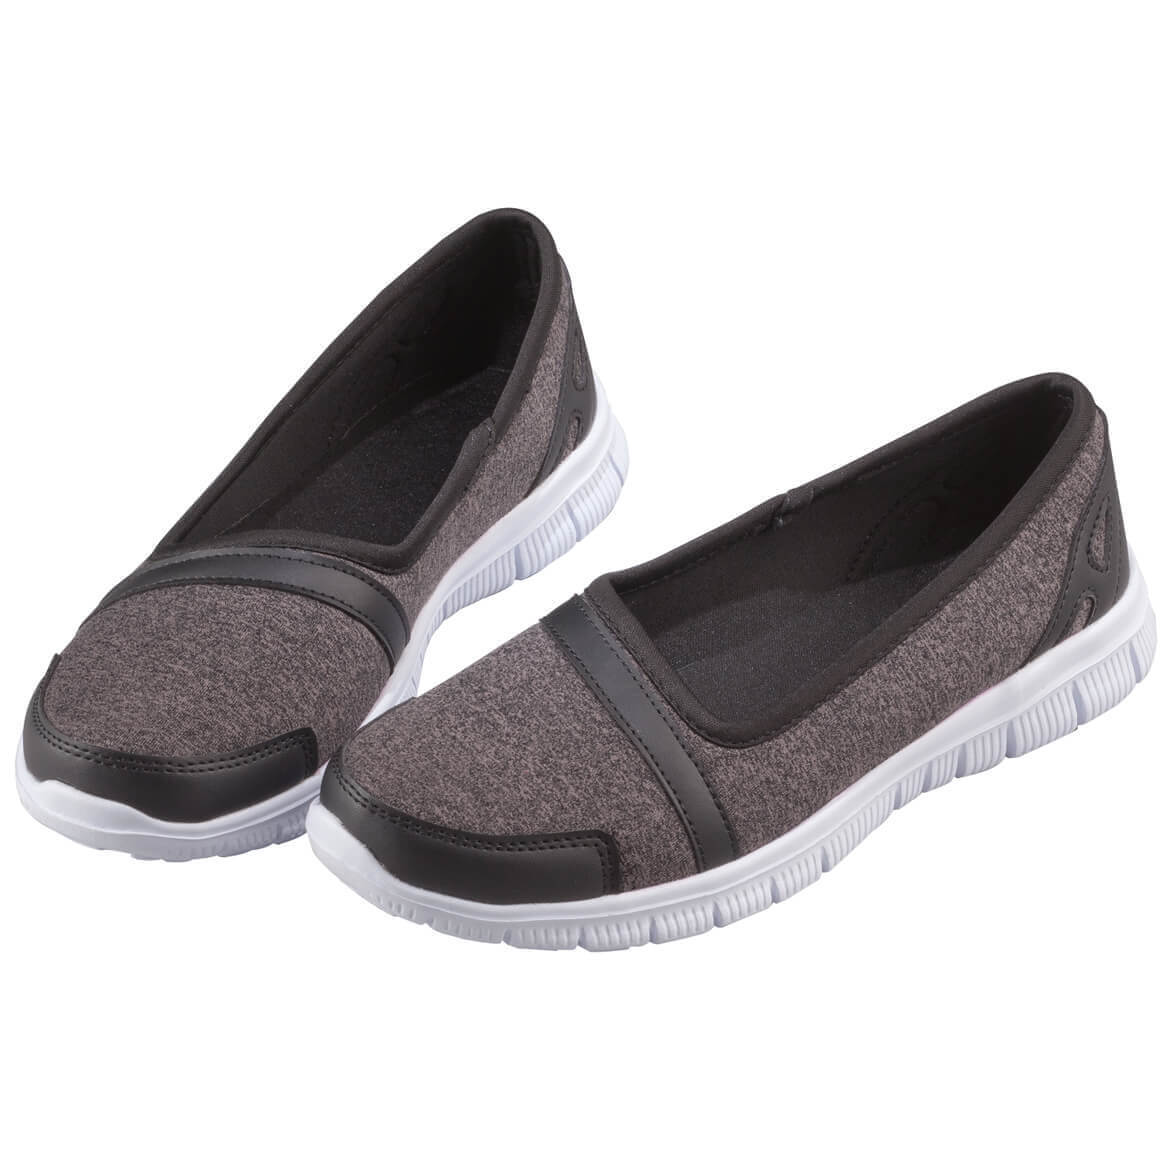 Silver Steps™ Feather Lite Slip-On Shoes-360144